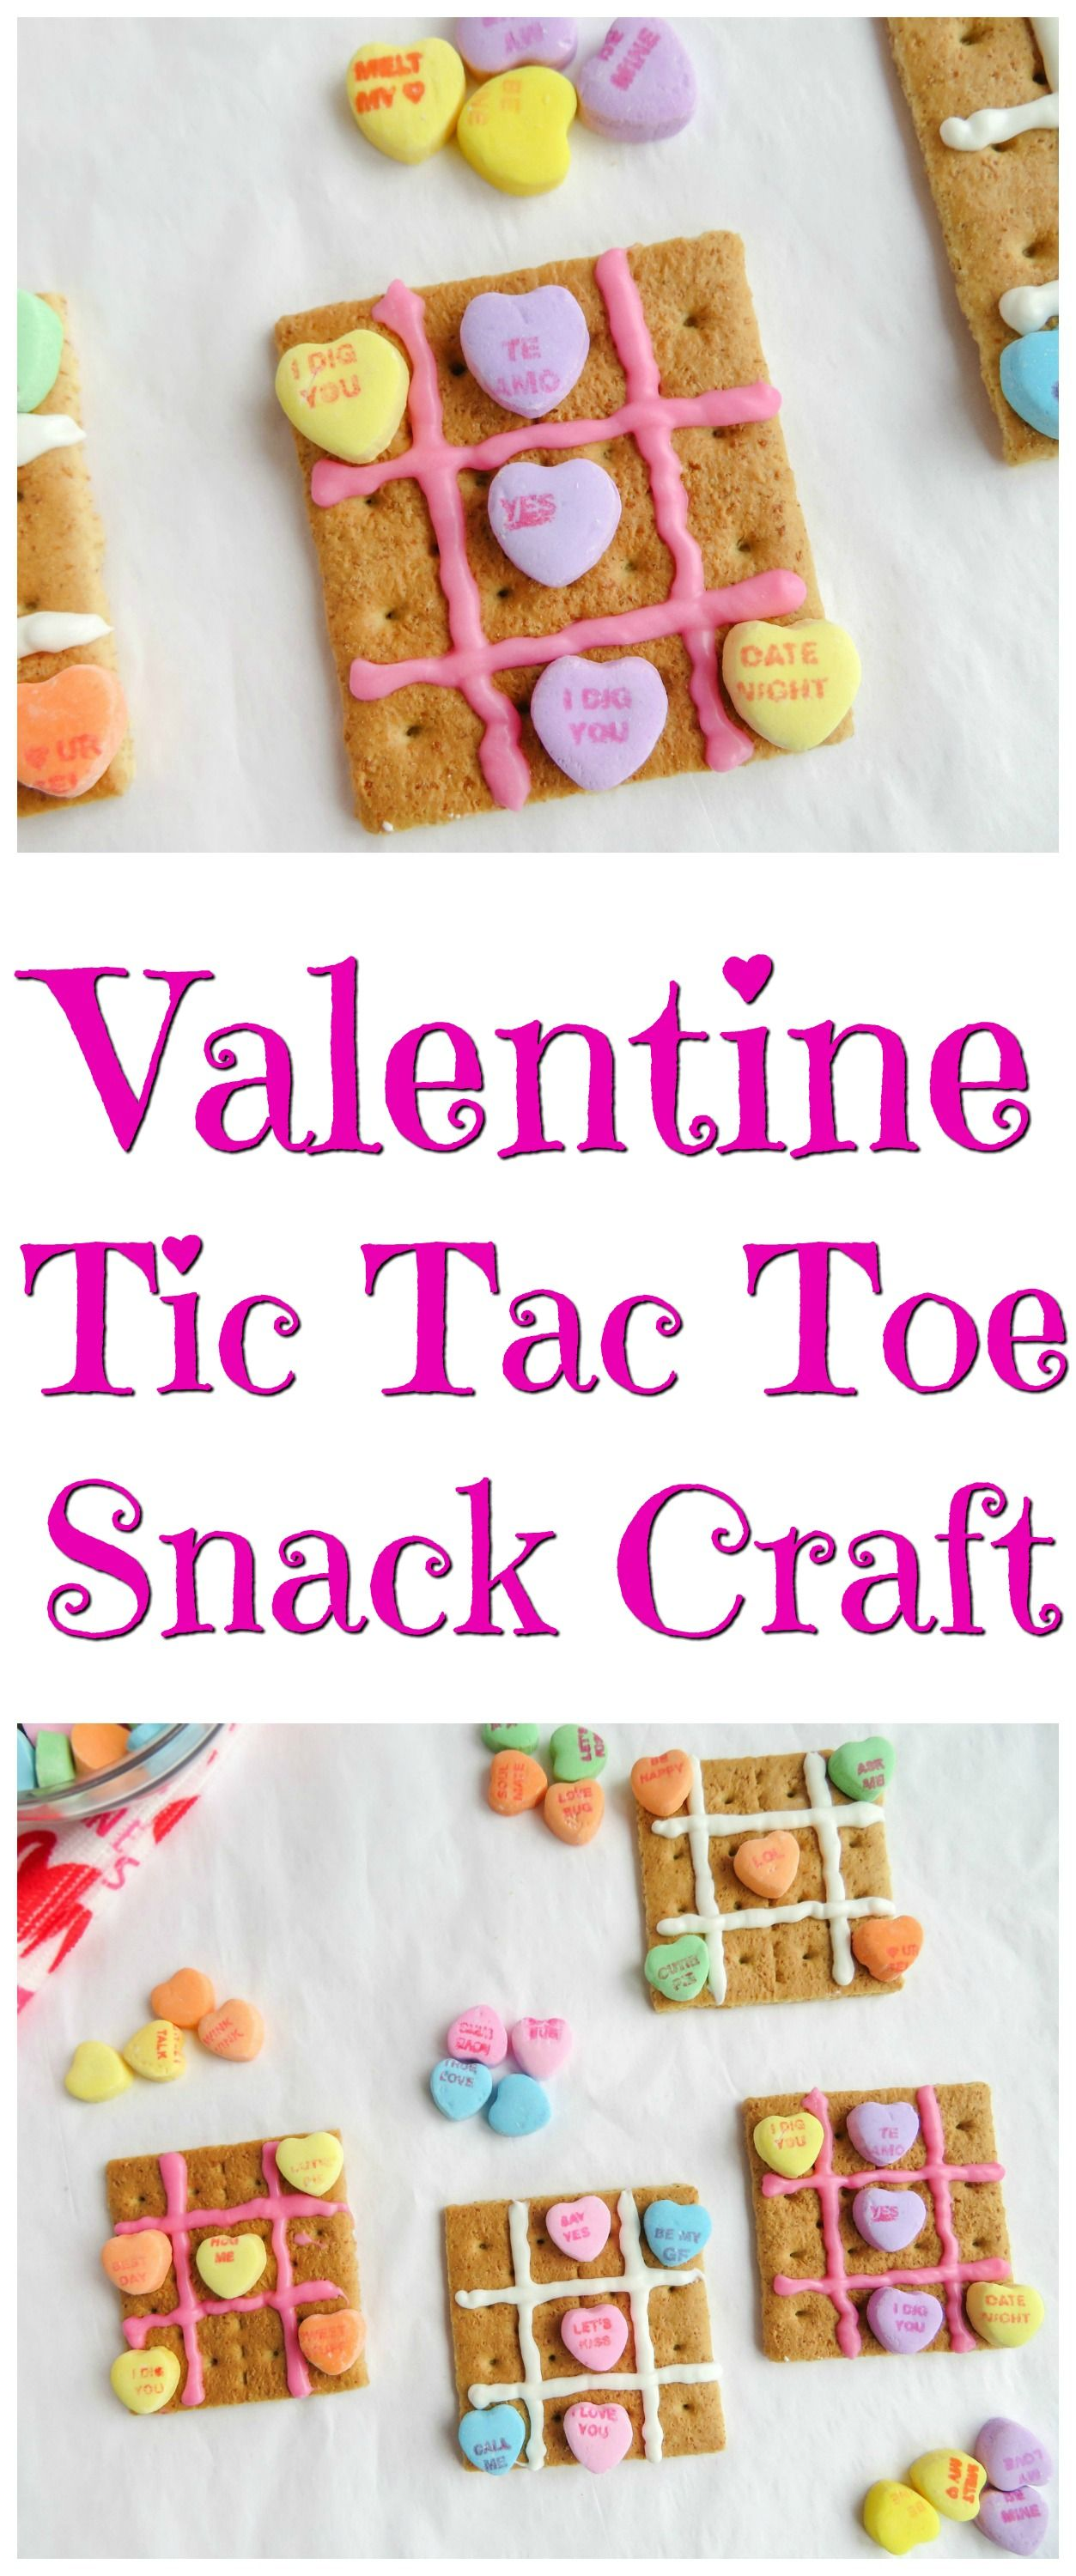 Valentine Tic Tac Toe Snack Craft Perfect For A Classroom Party Too